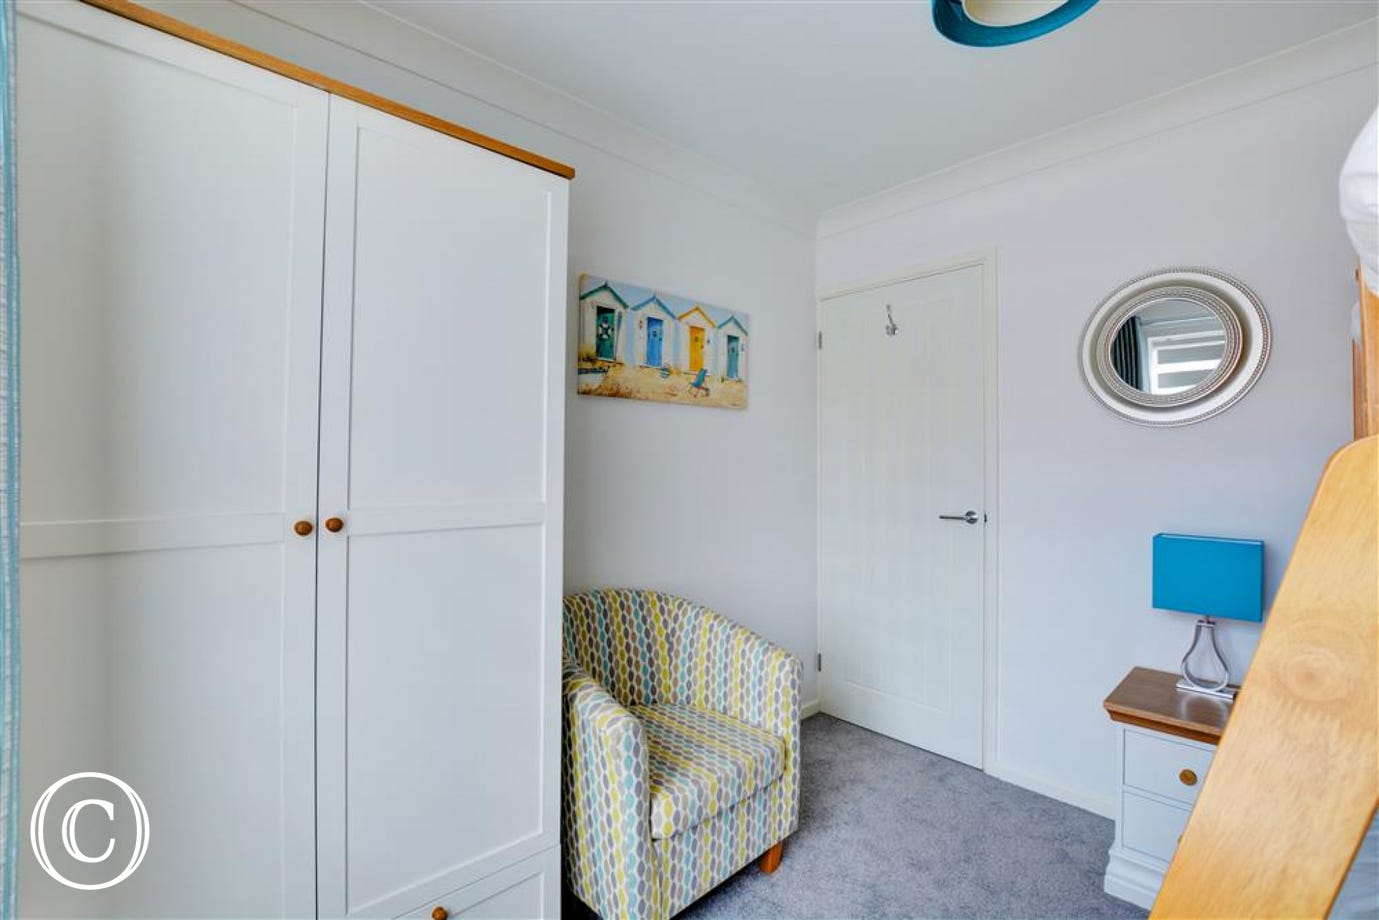 Seating and storage in the third bedroom